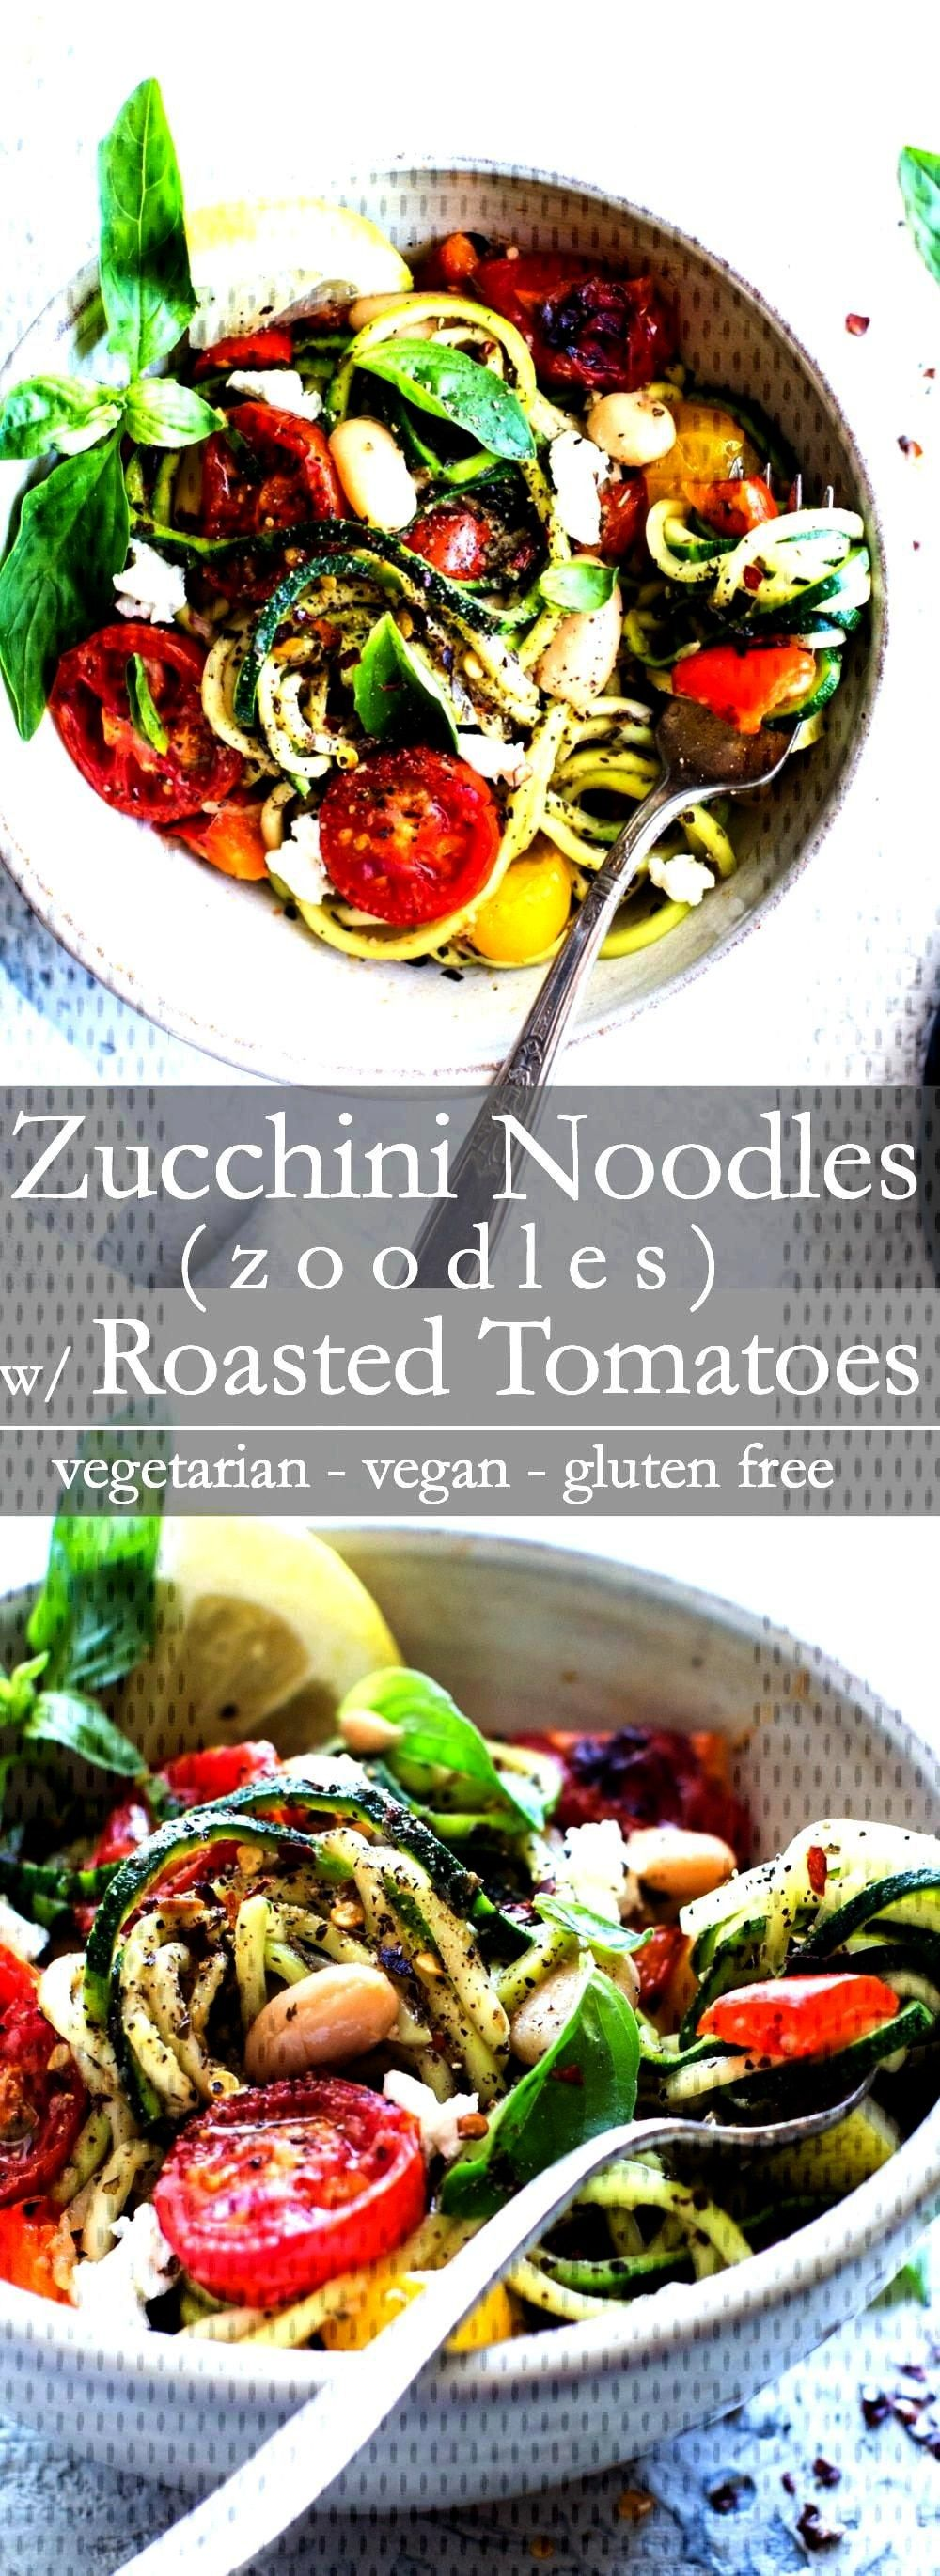 Noodles(Zoodles) Recipe with Roasted Cherry Tomatoes recipe: quick to pull together and Zucchini Noodles(Zoodles) Recipe with Roasted Cherry Tomatoes recipe: quick to pull together and packed with late summer veggies. I share how simple it is to cook zucchini noodles in a fabulous and easy zoodles recipe. A healthy pasta alternat...Zucchin